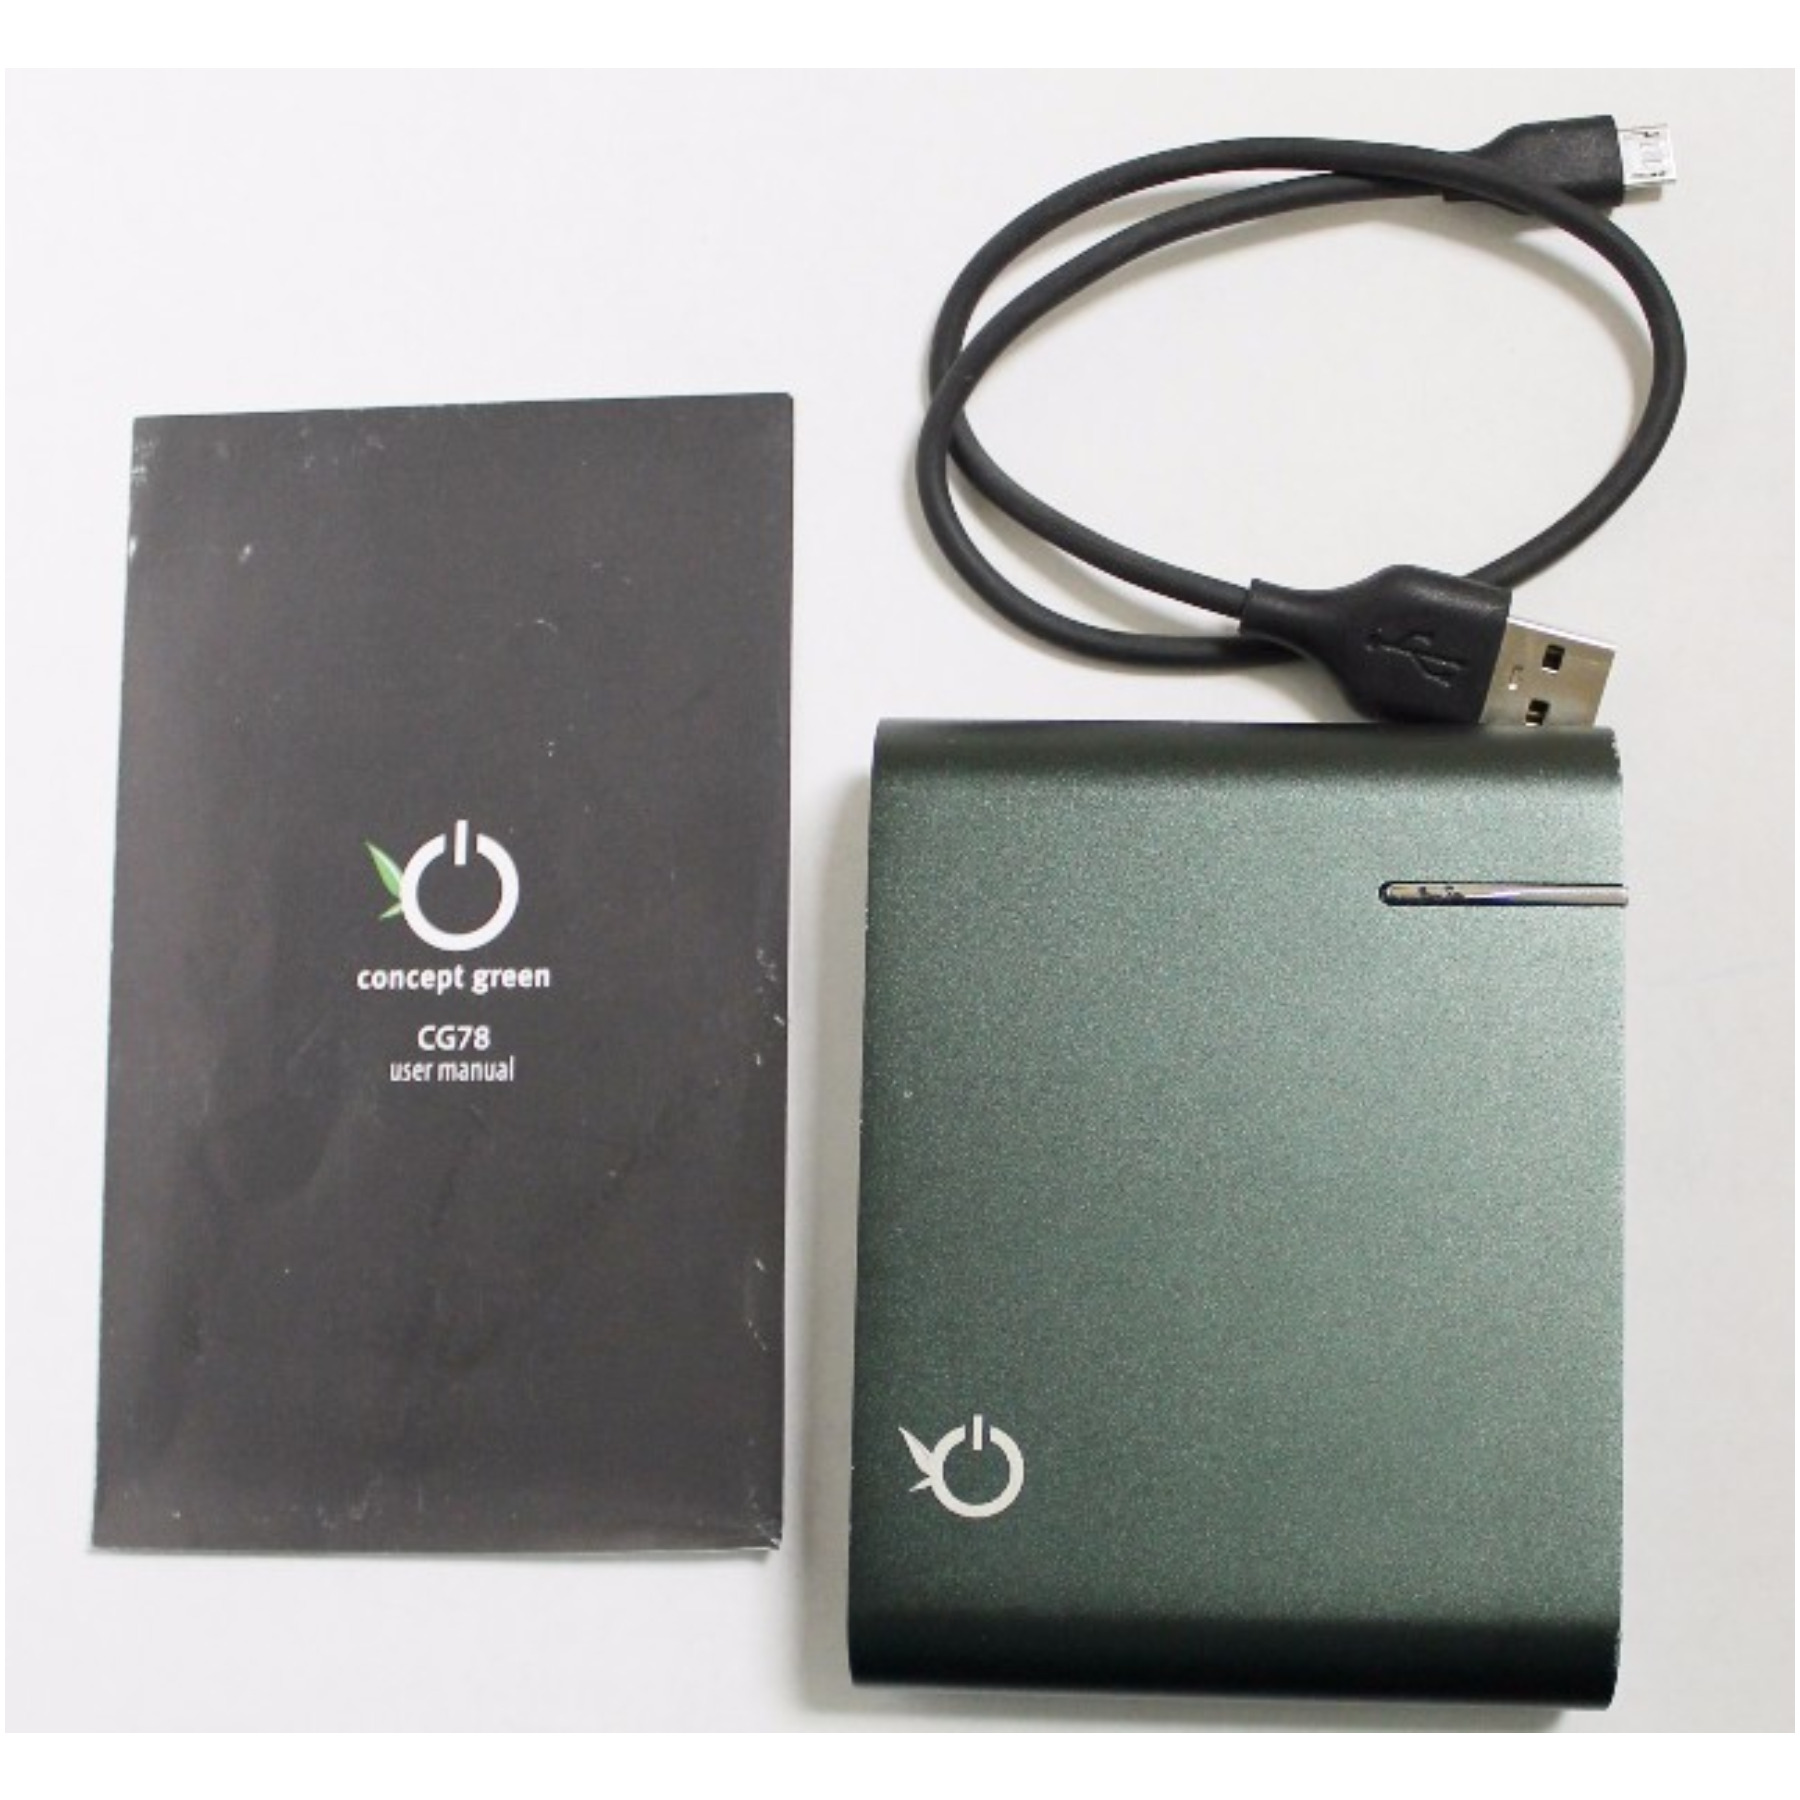 Concept Green CG78-G Battery Portable Charger - 3600mah